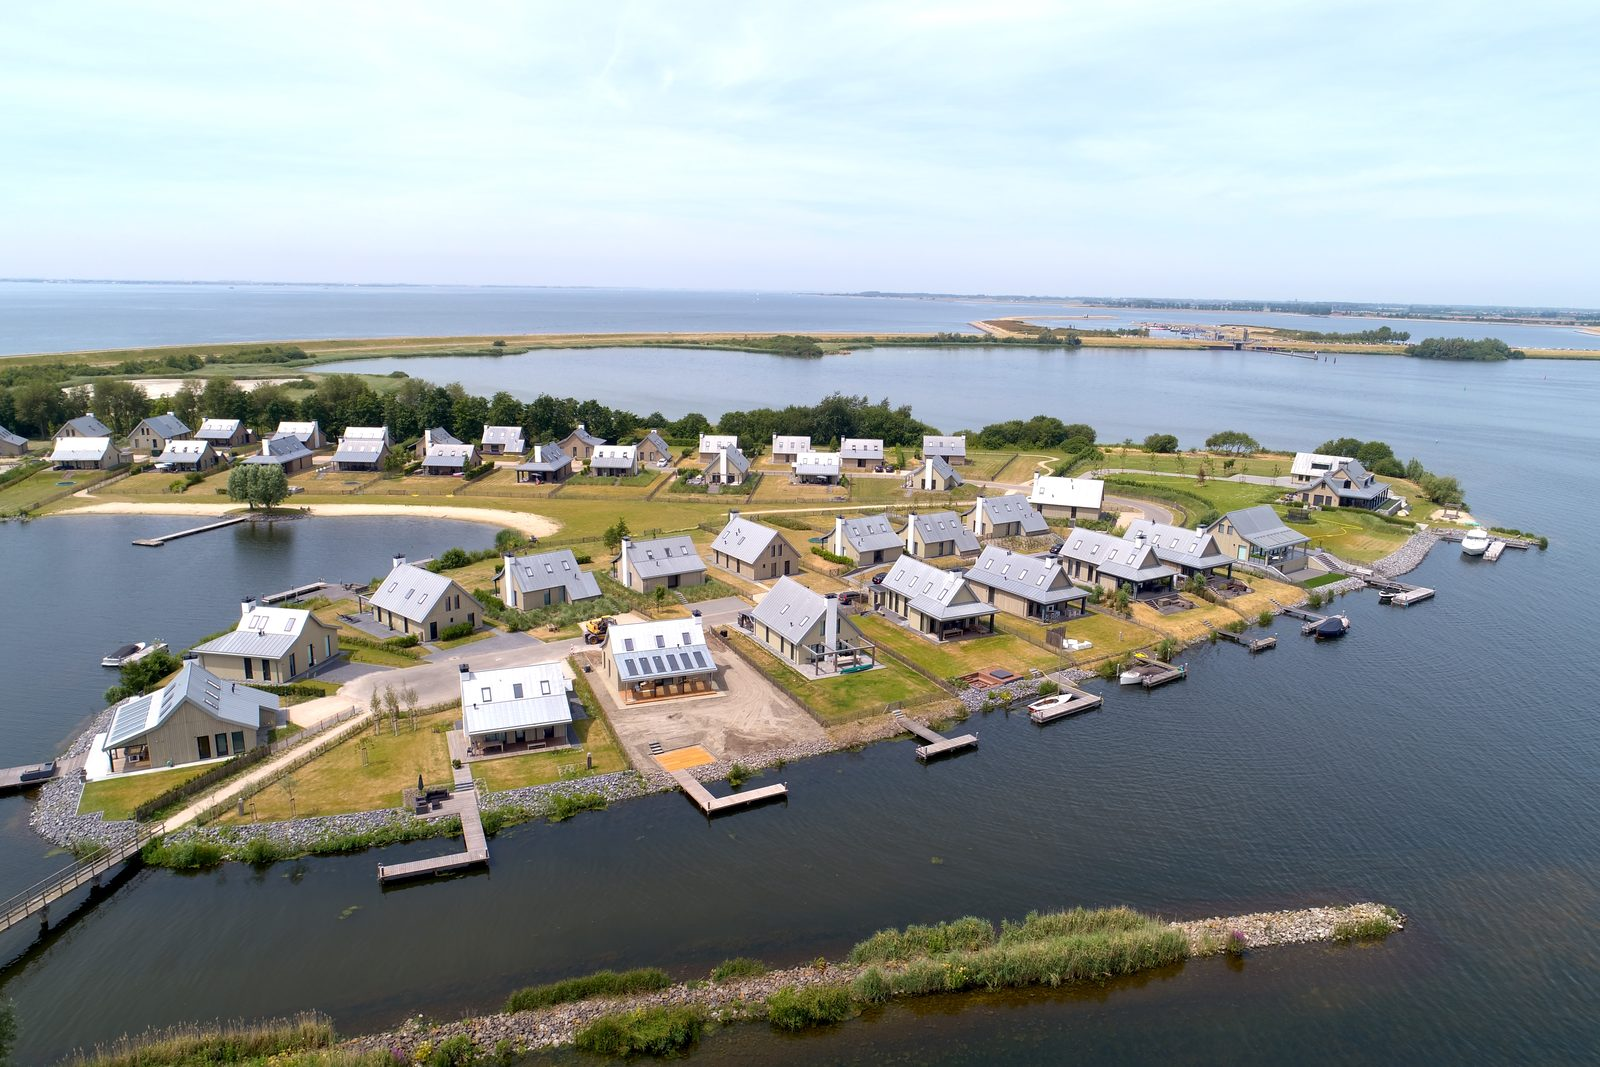 Luxurious holiday park the Netherlands